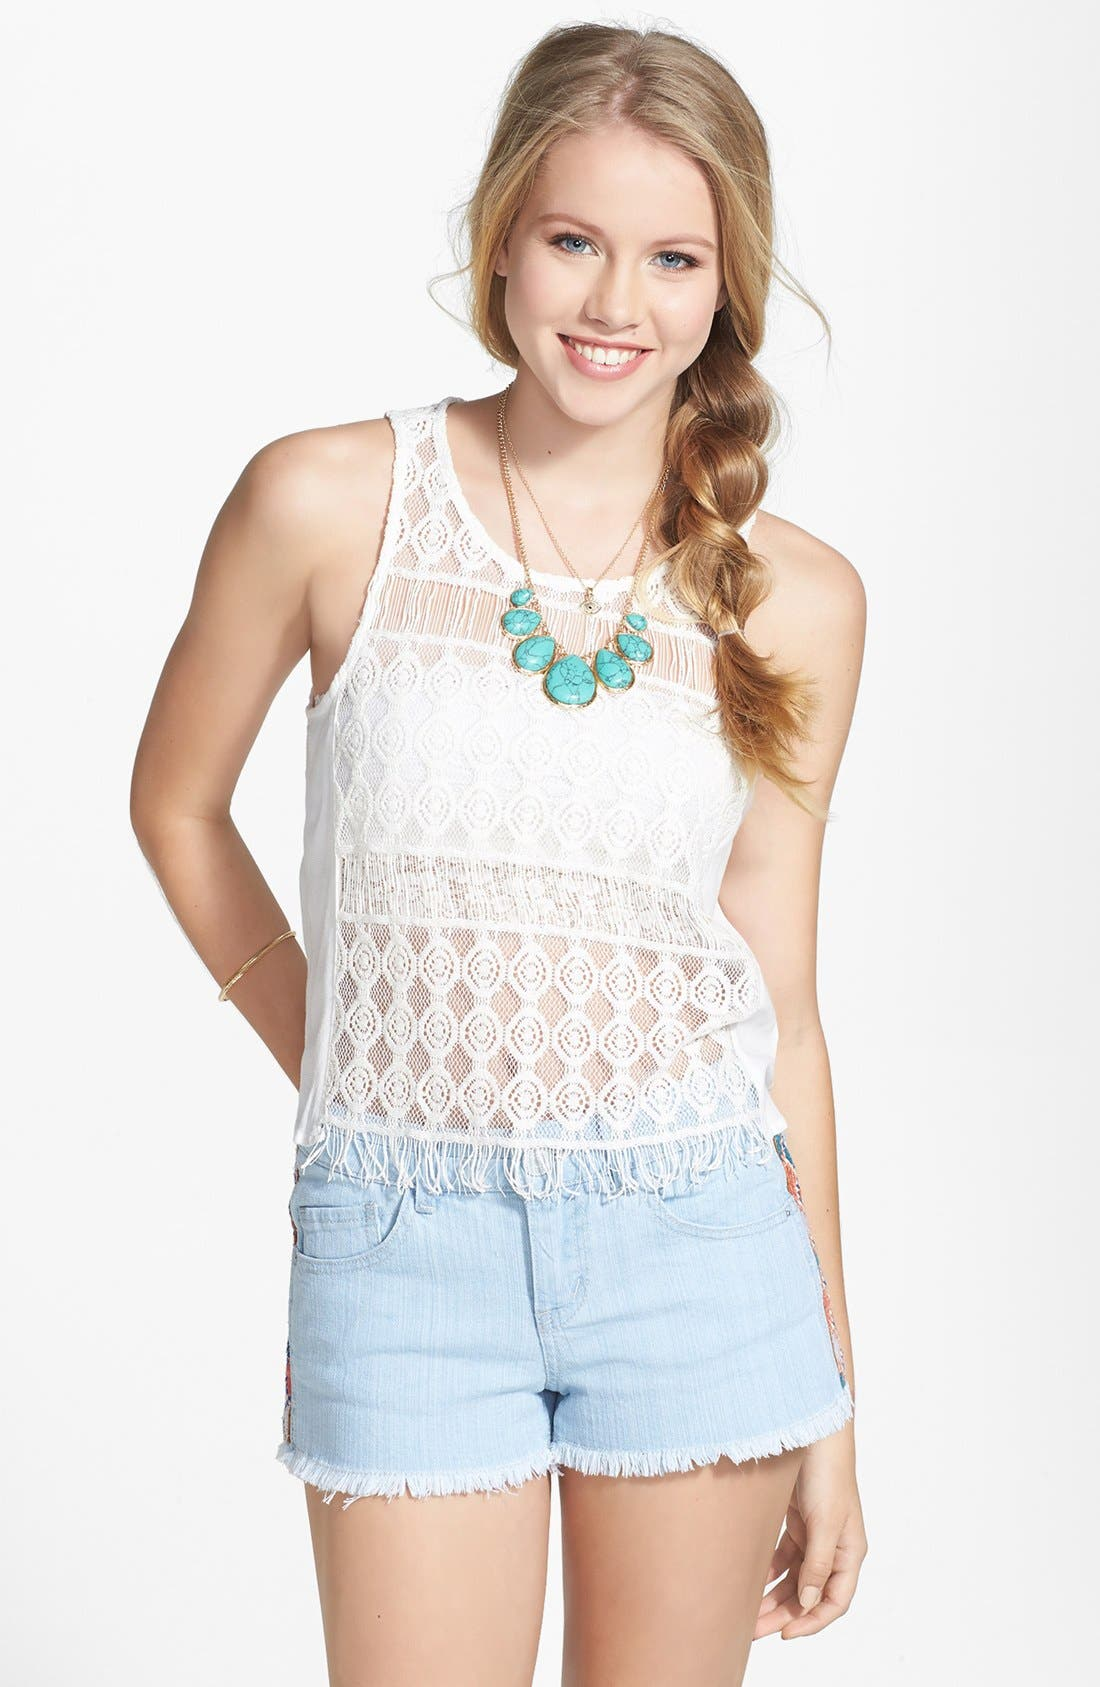 Alternate Image 1 Selected - Chloe K Sheer Crocheted Top (Juniors) (Online Only)